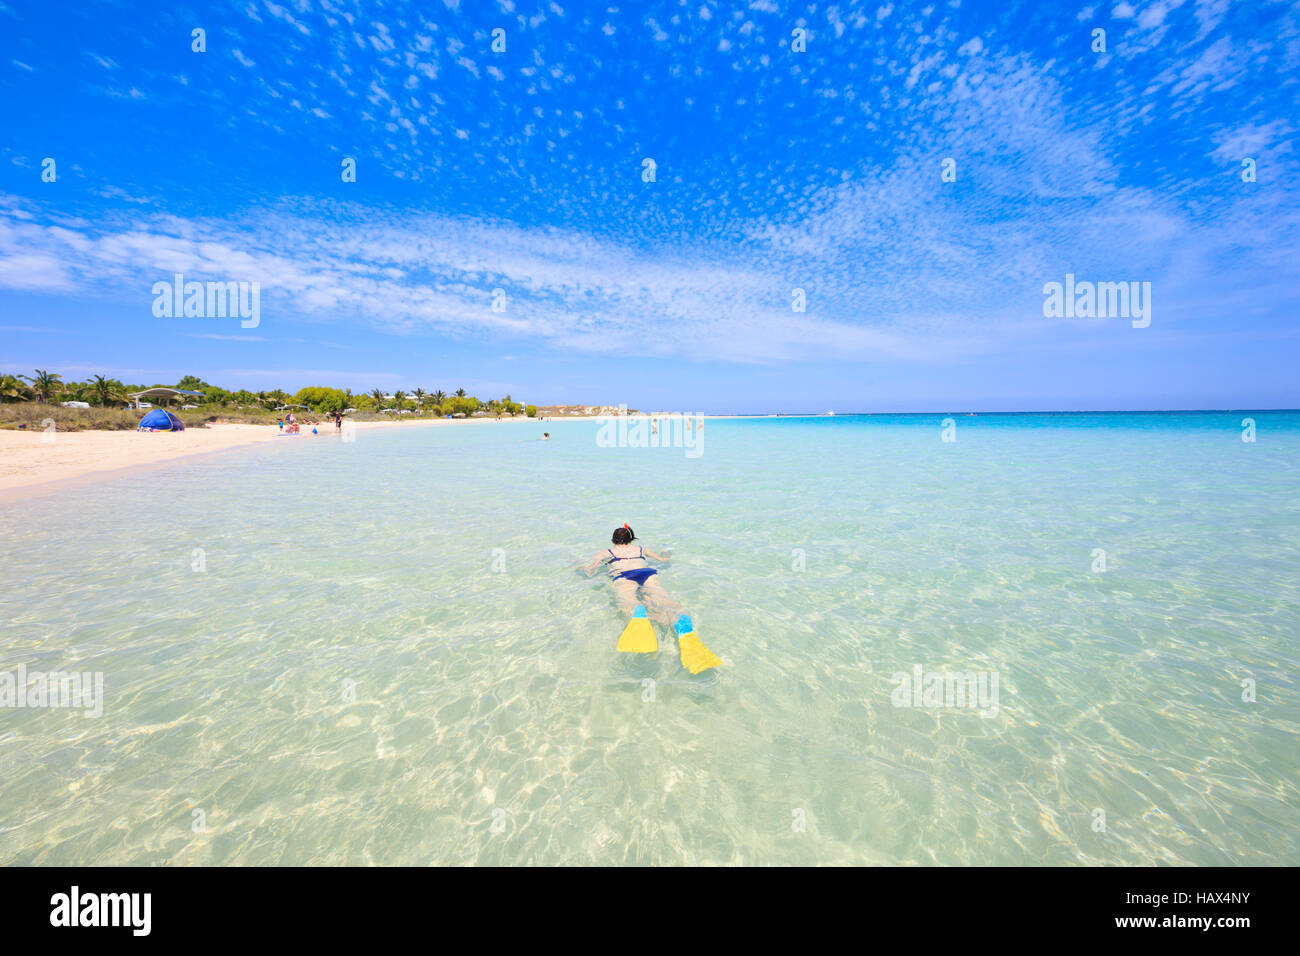 A woman snorkeling in the clear, shallow waters at Coral Bay. Western Australia - Stock Image